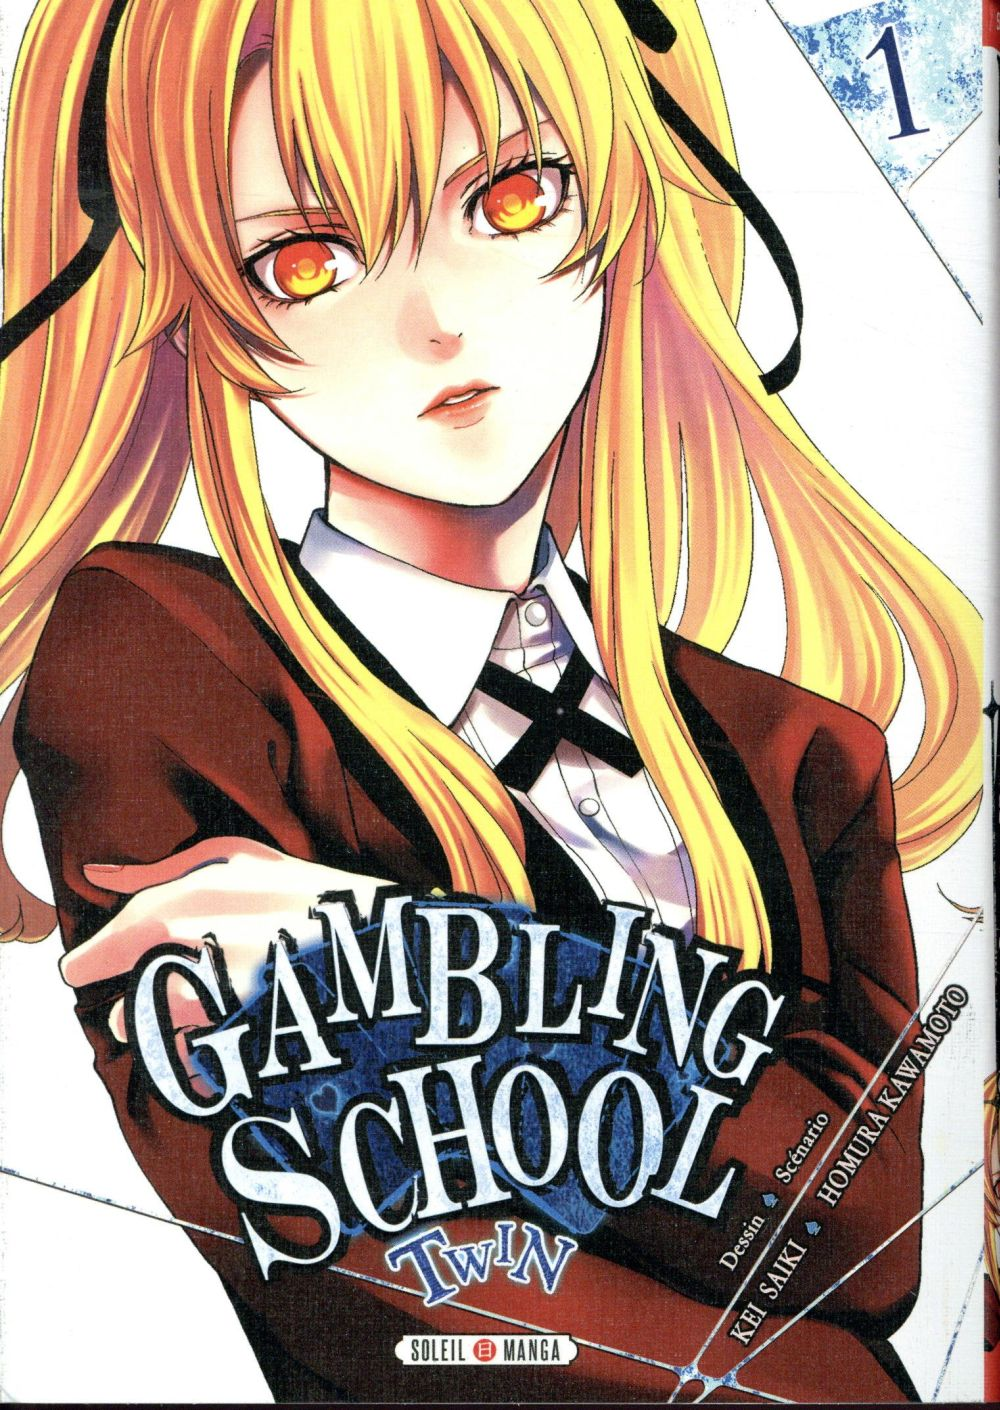 Gambling School - Twin T.1